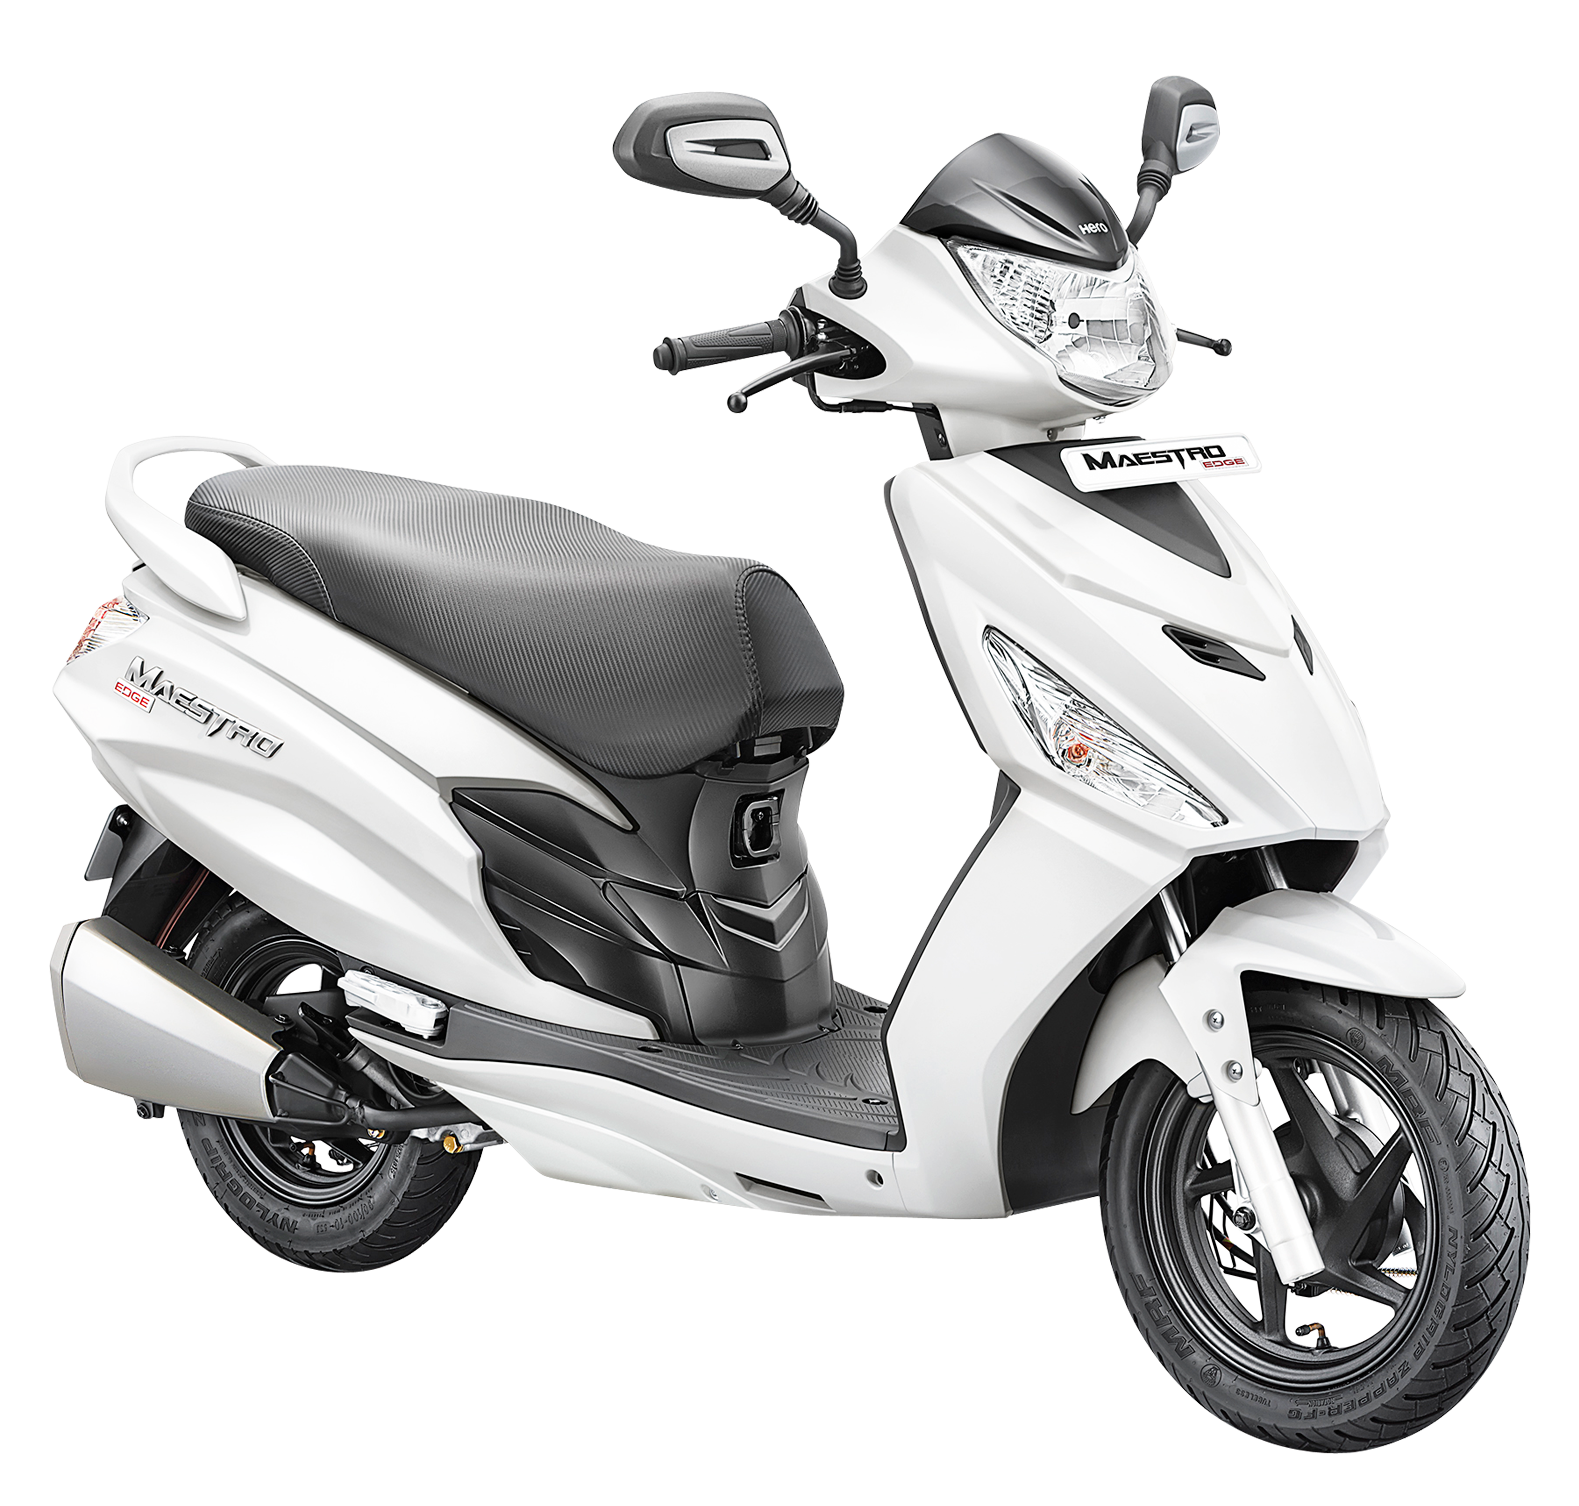 Hero maestro edge scooter. Motorcycle clipart scooty